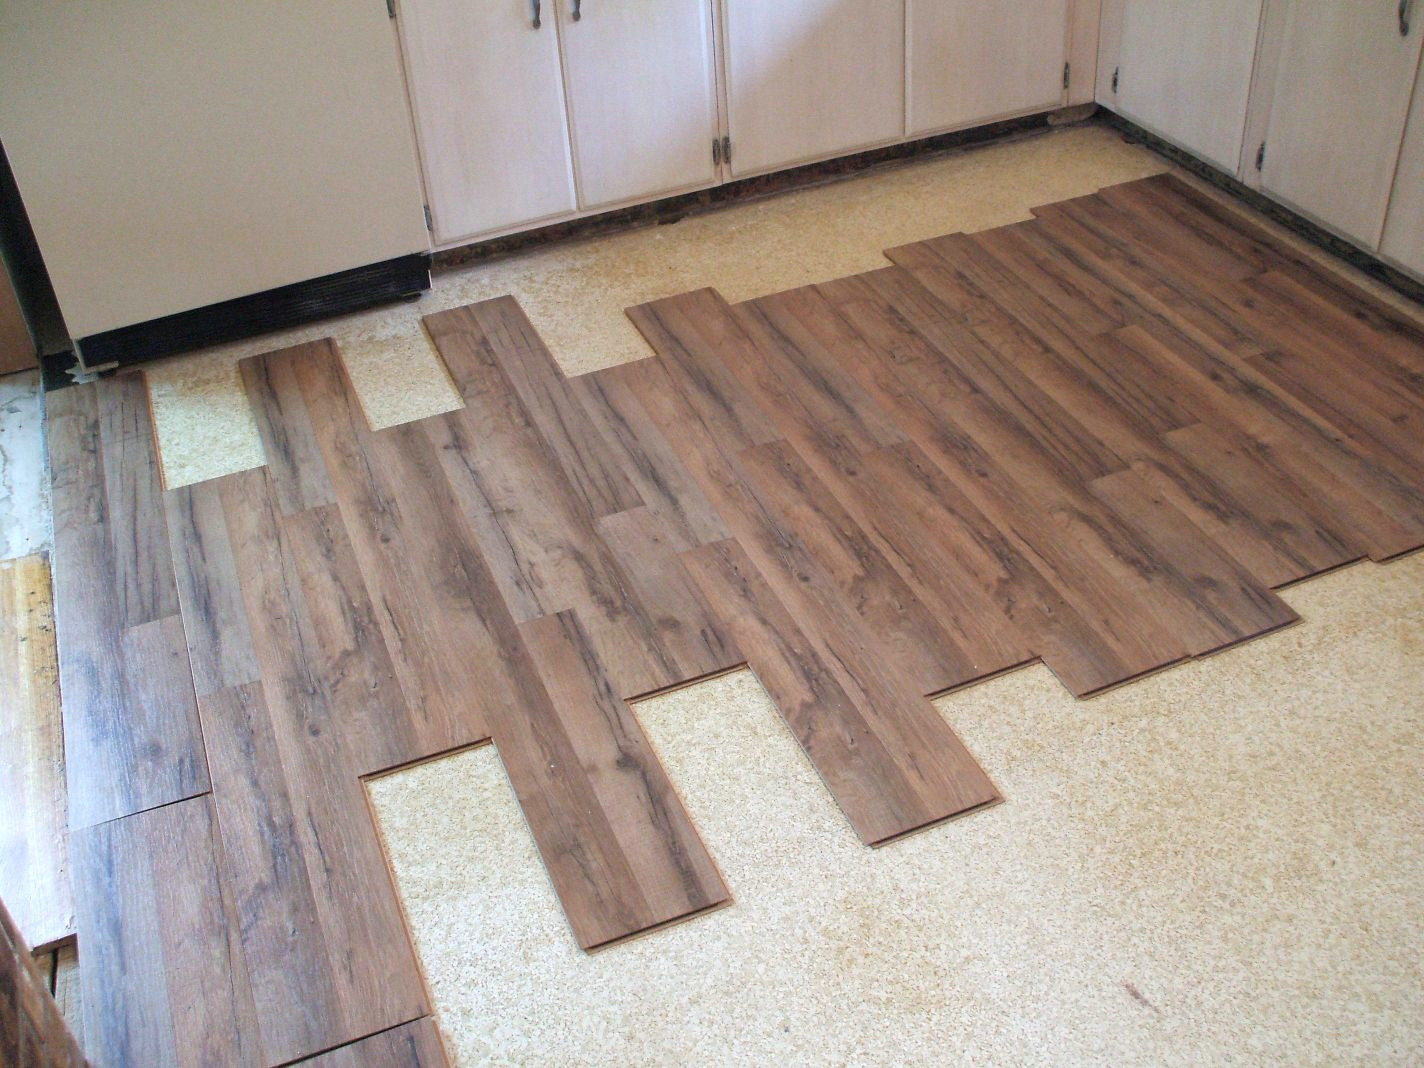 found hardwood floor under carpet of 45 unique best vacuum for hardwood floors and area rugs photograph inside best vacuum for hardwood floors and area rugs inspirational 24 nice best area rugs for living